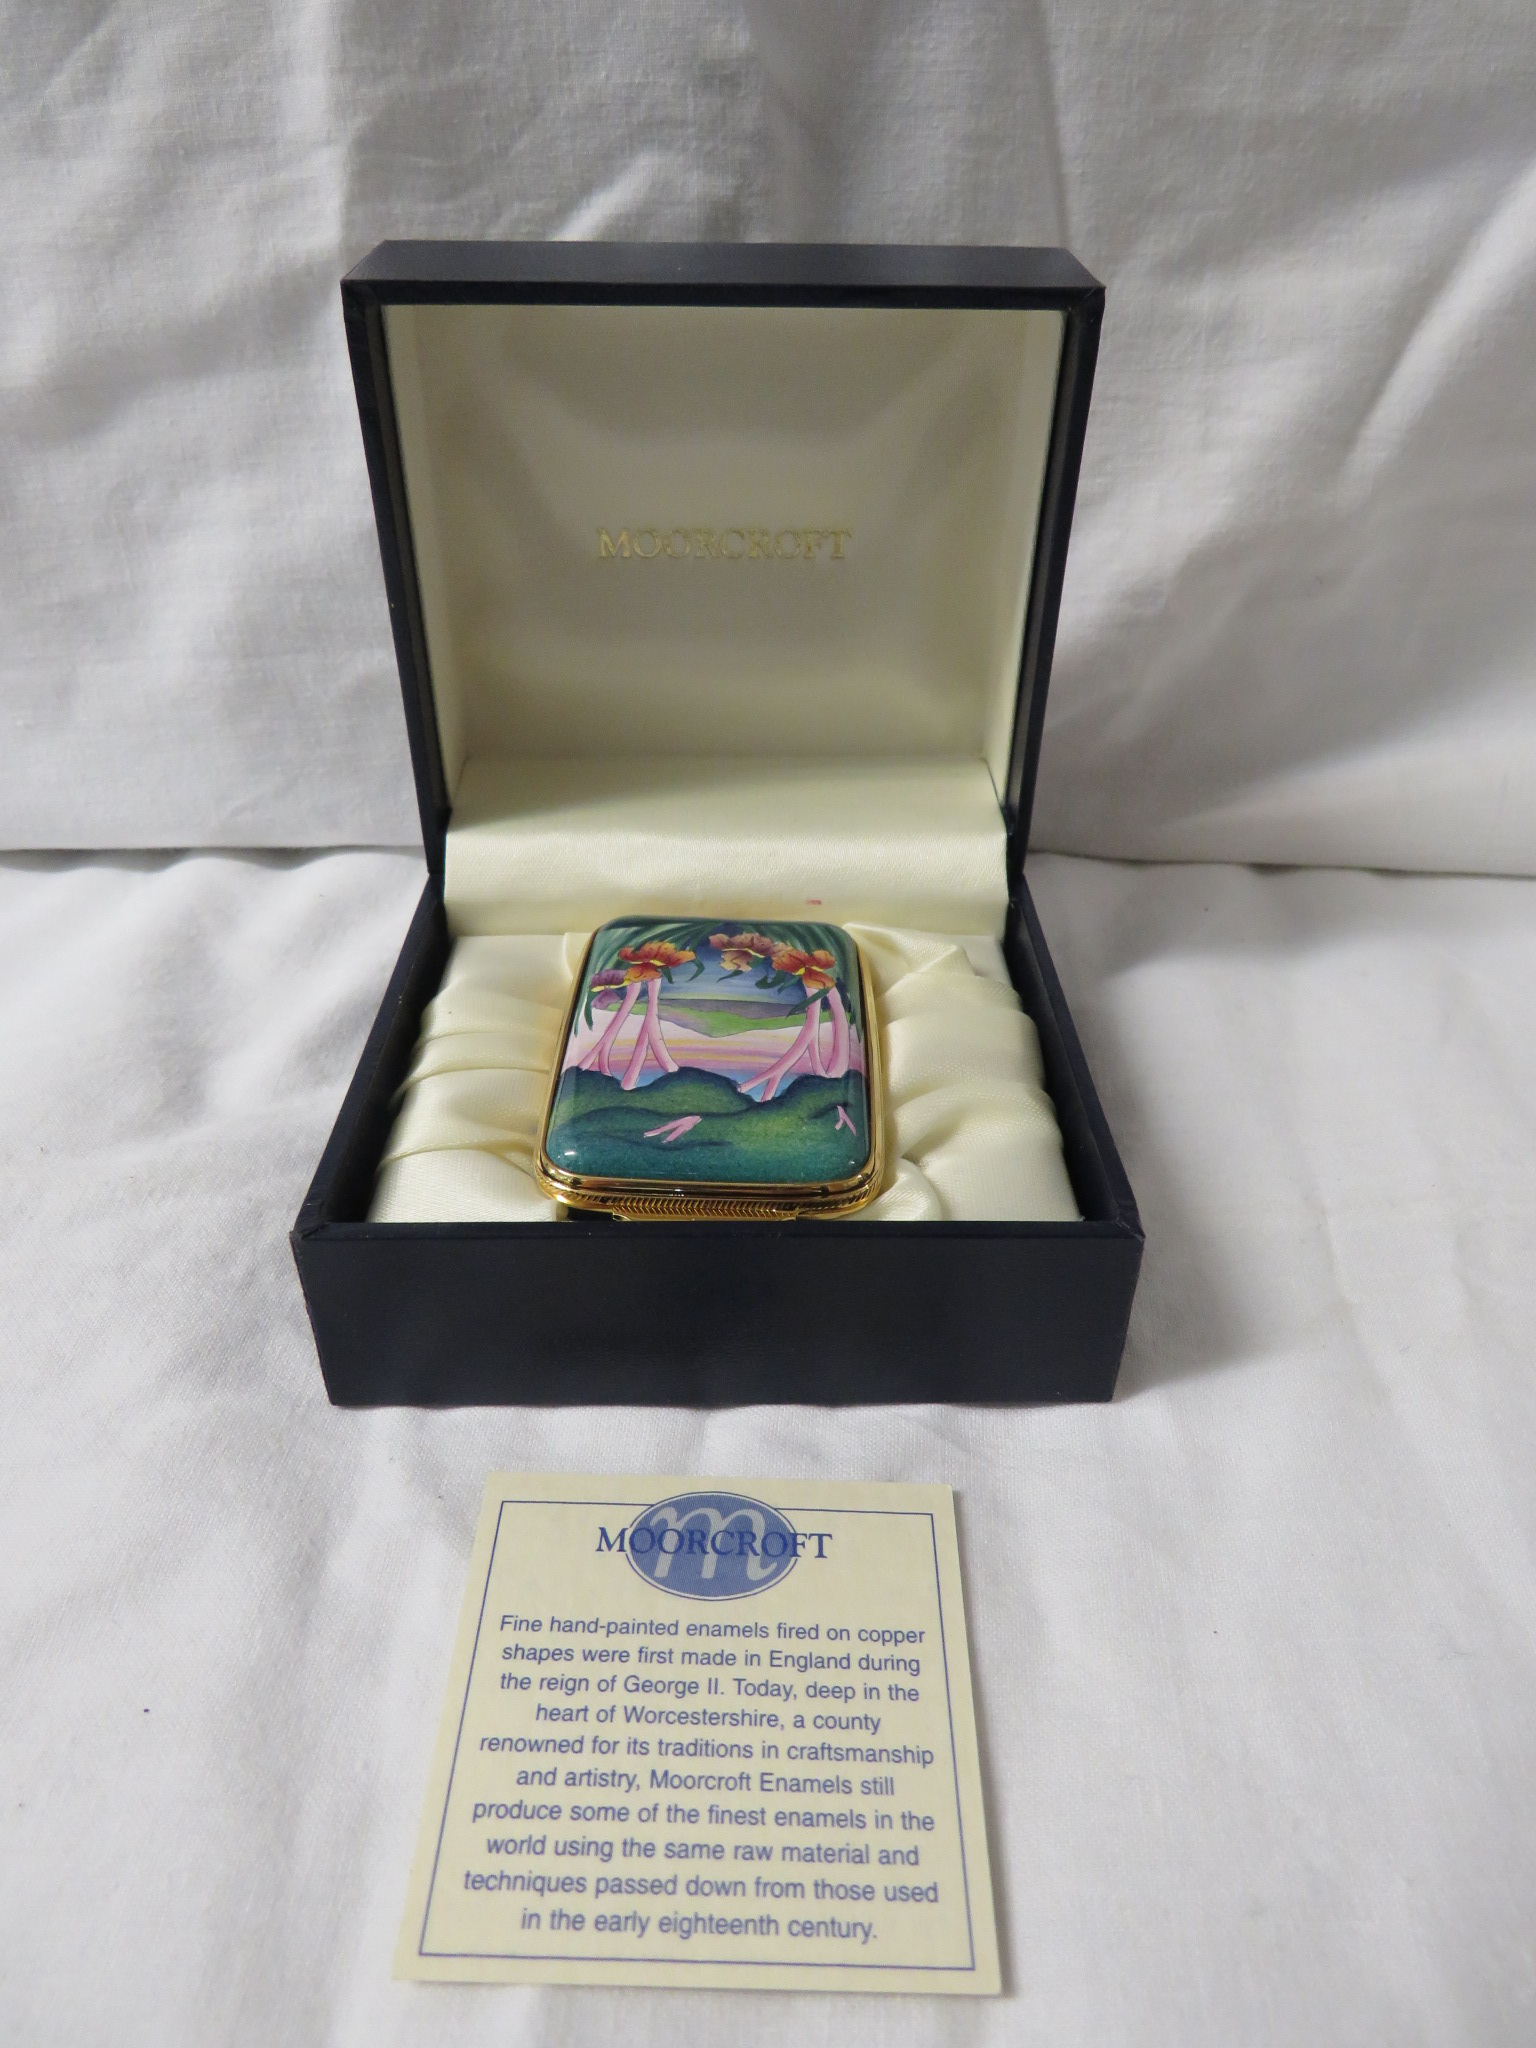 Lot 30 - Moorcroft enamel oblong pill box with hinged lid, blue body, the lid painted with landscape and